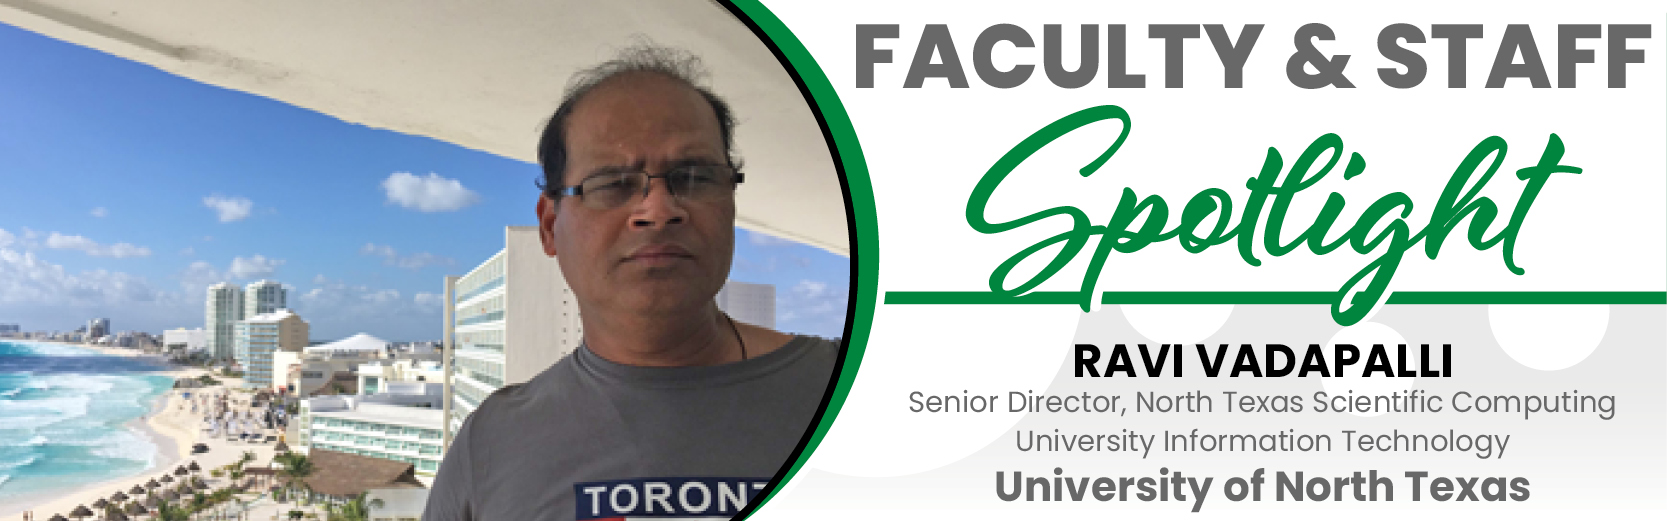 Faculty & Staff Spotlight: Ravi Vadapalli